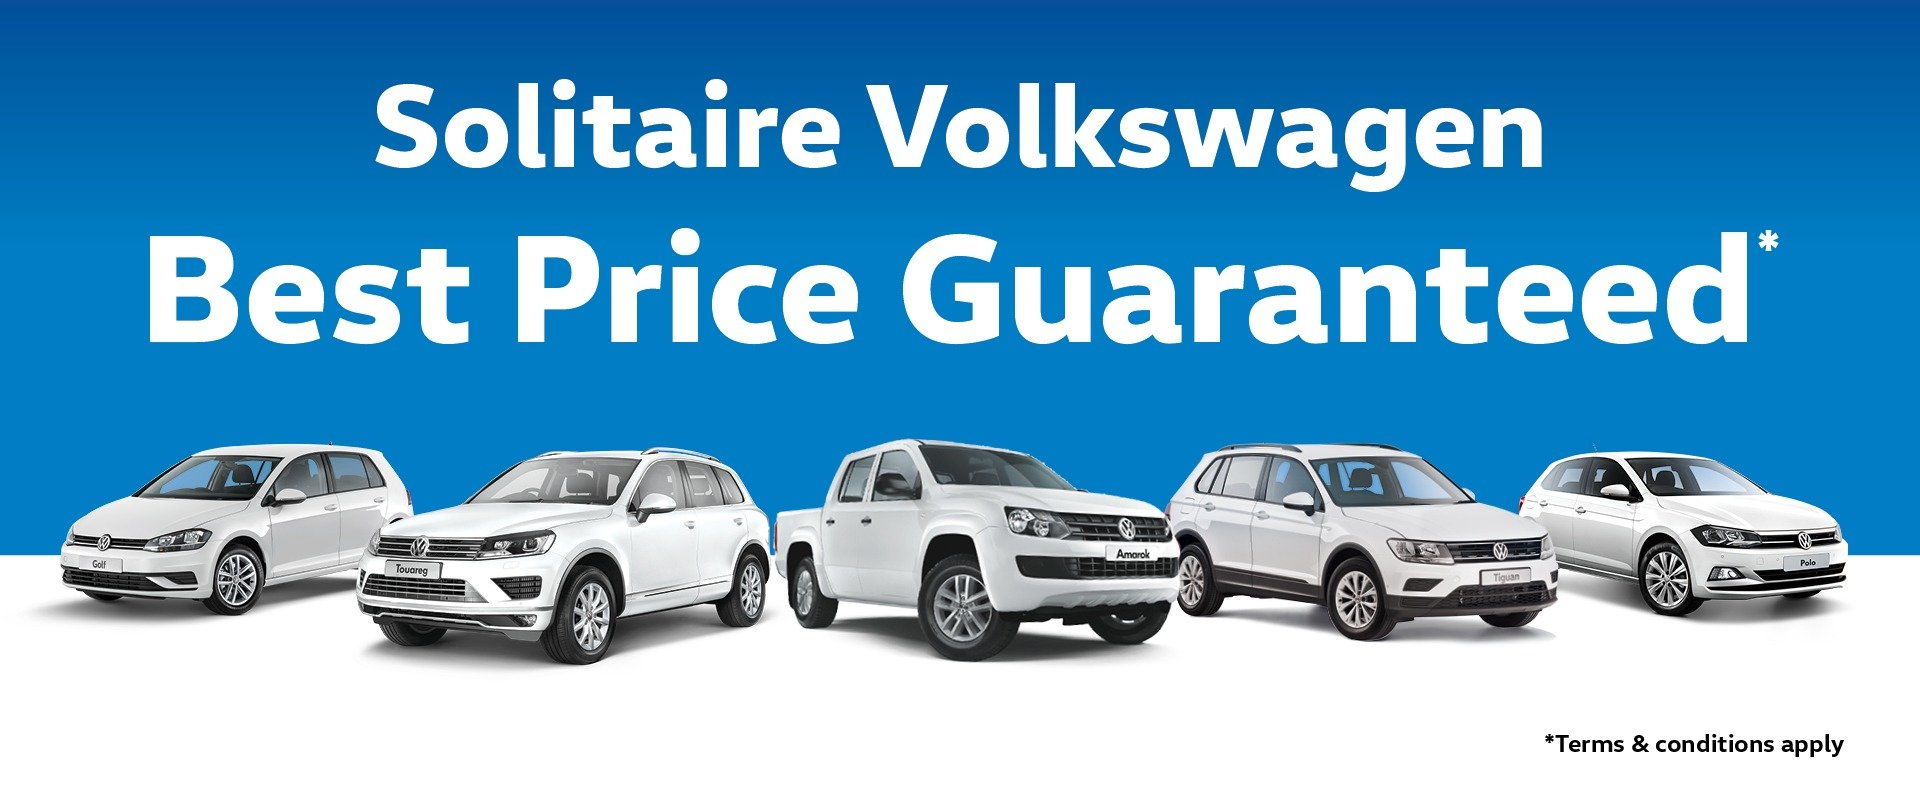 Solitaire Volkswagen Best Price Guaranteed*